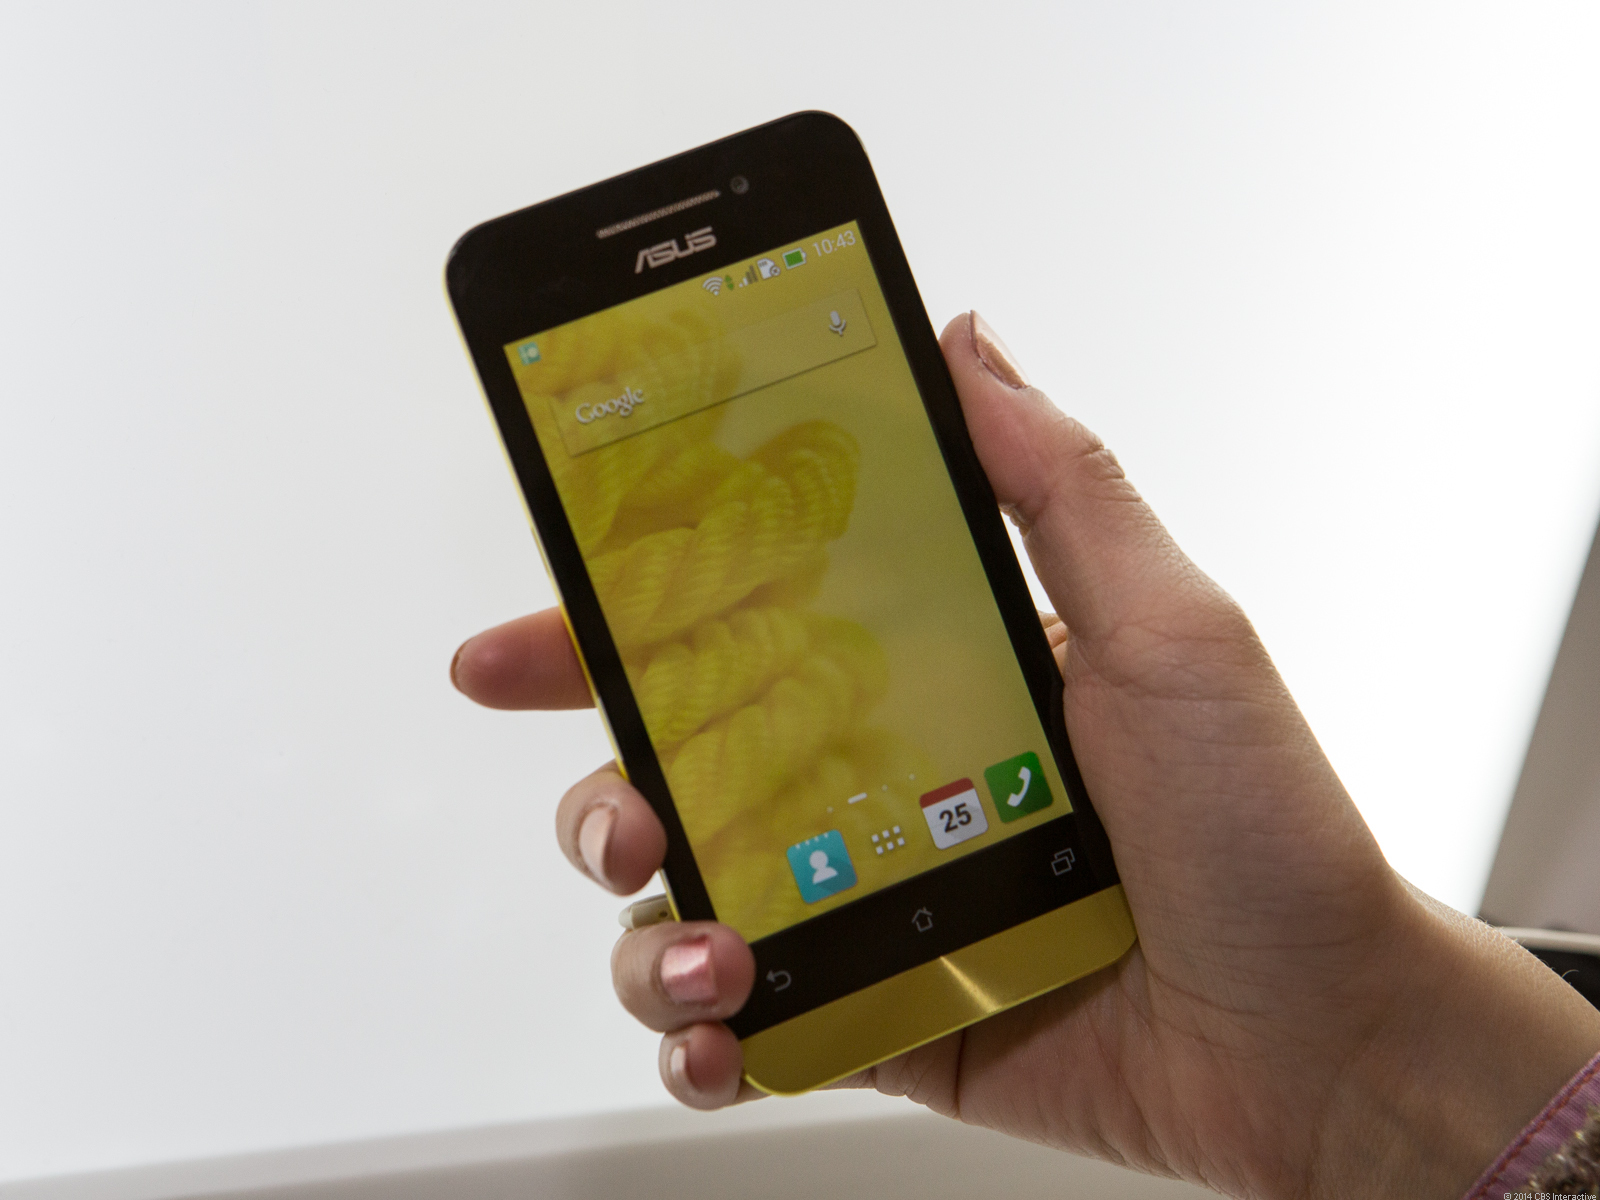 Compact 4-inch phone